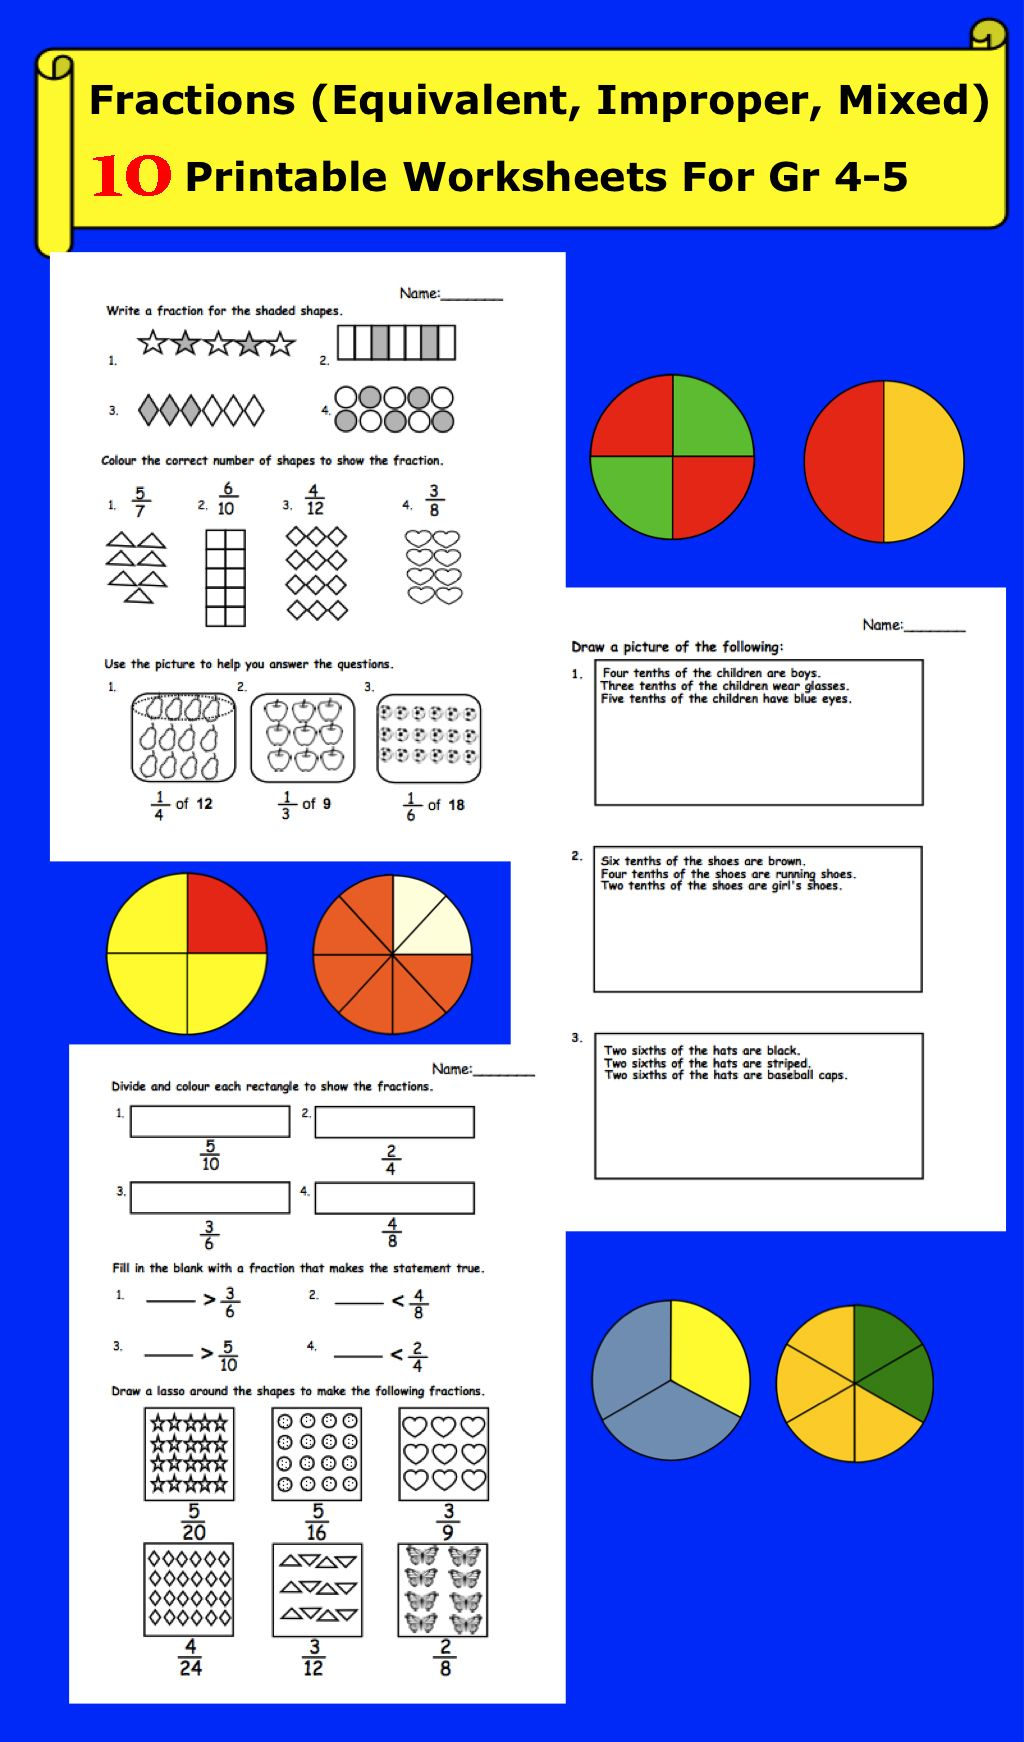 Fractions Equivalent Improper Mixed Printable